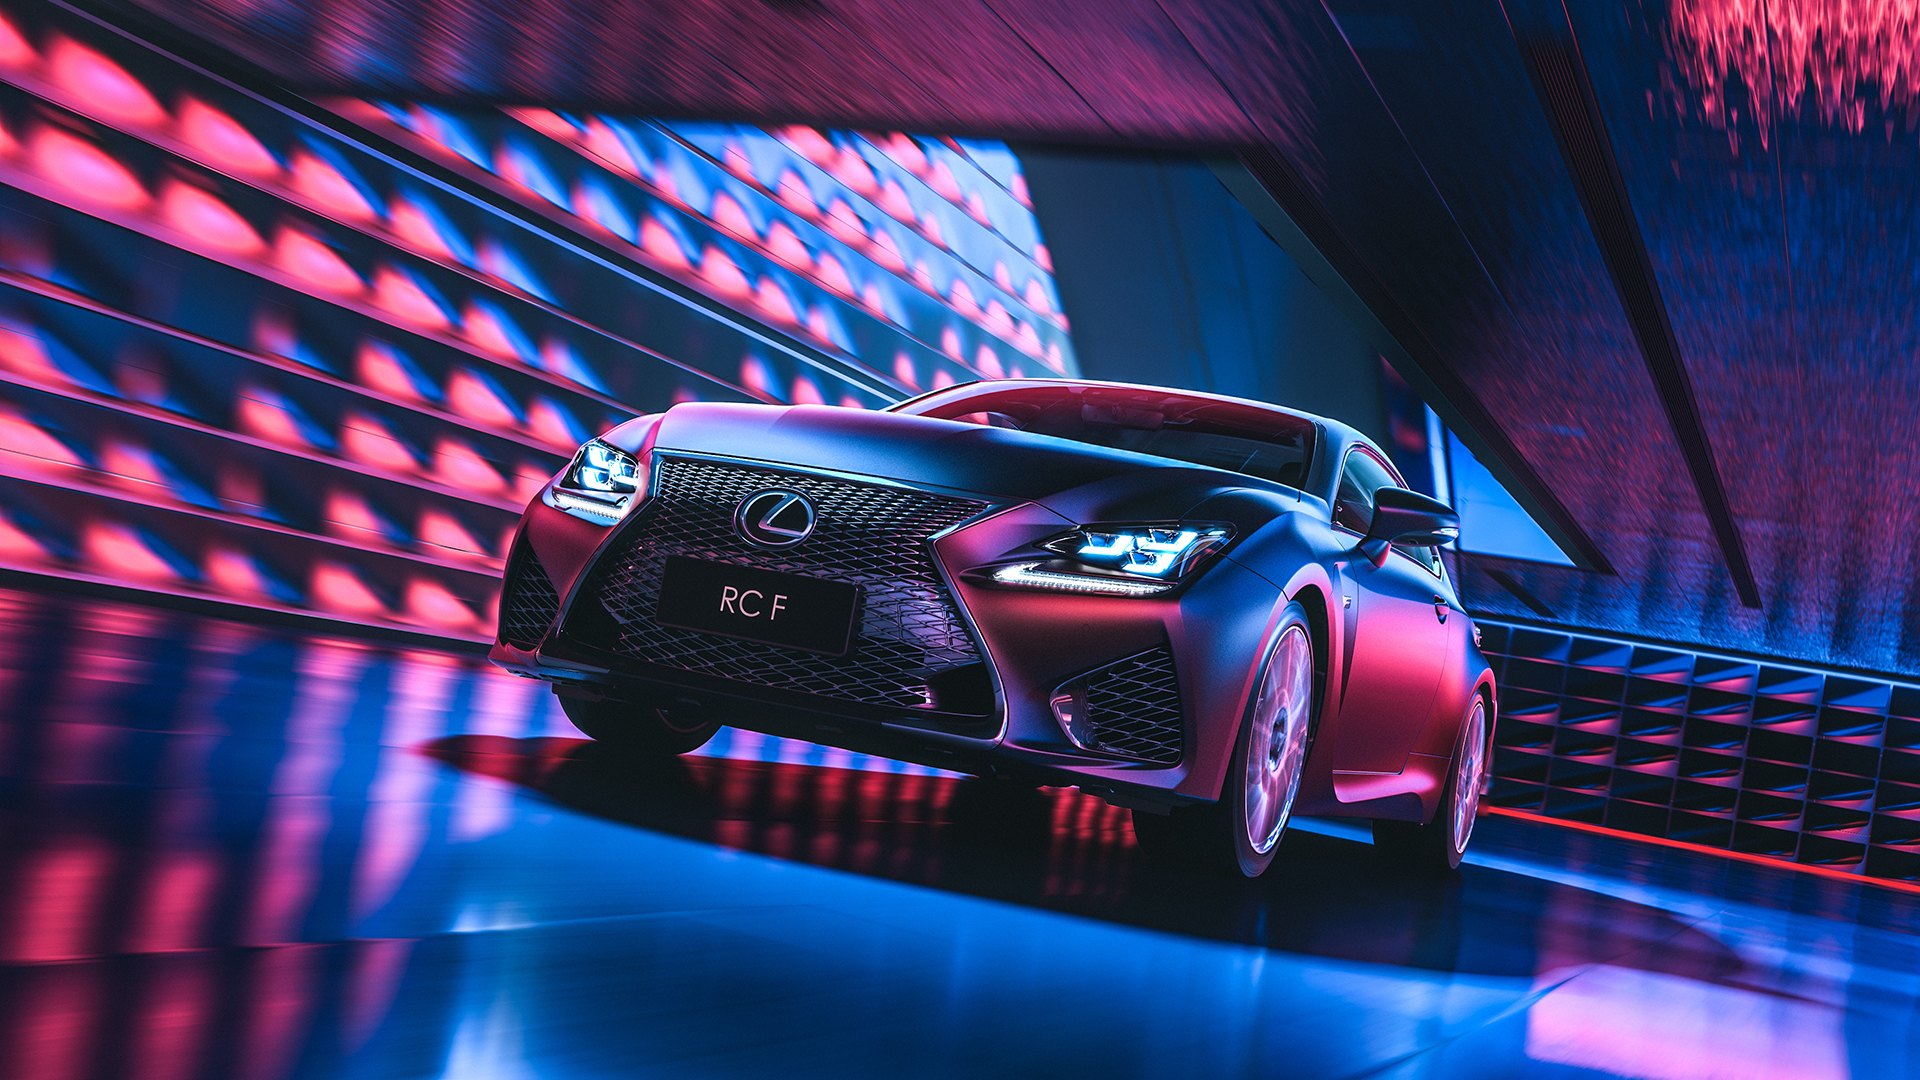 Lexus RC F CGI & Retouching on Behance